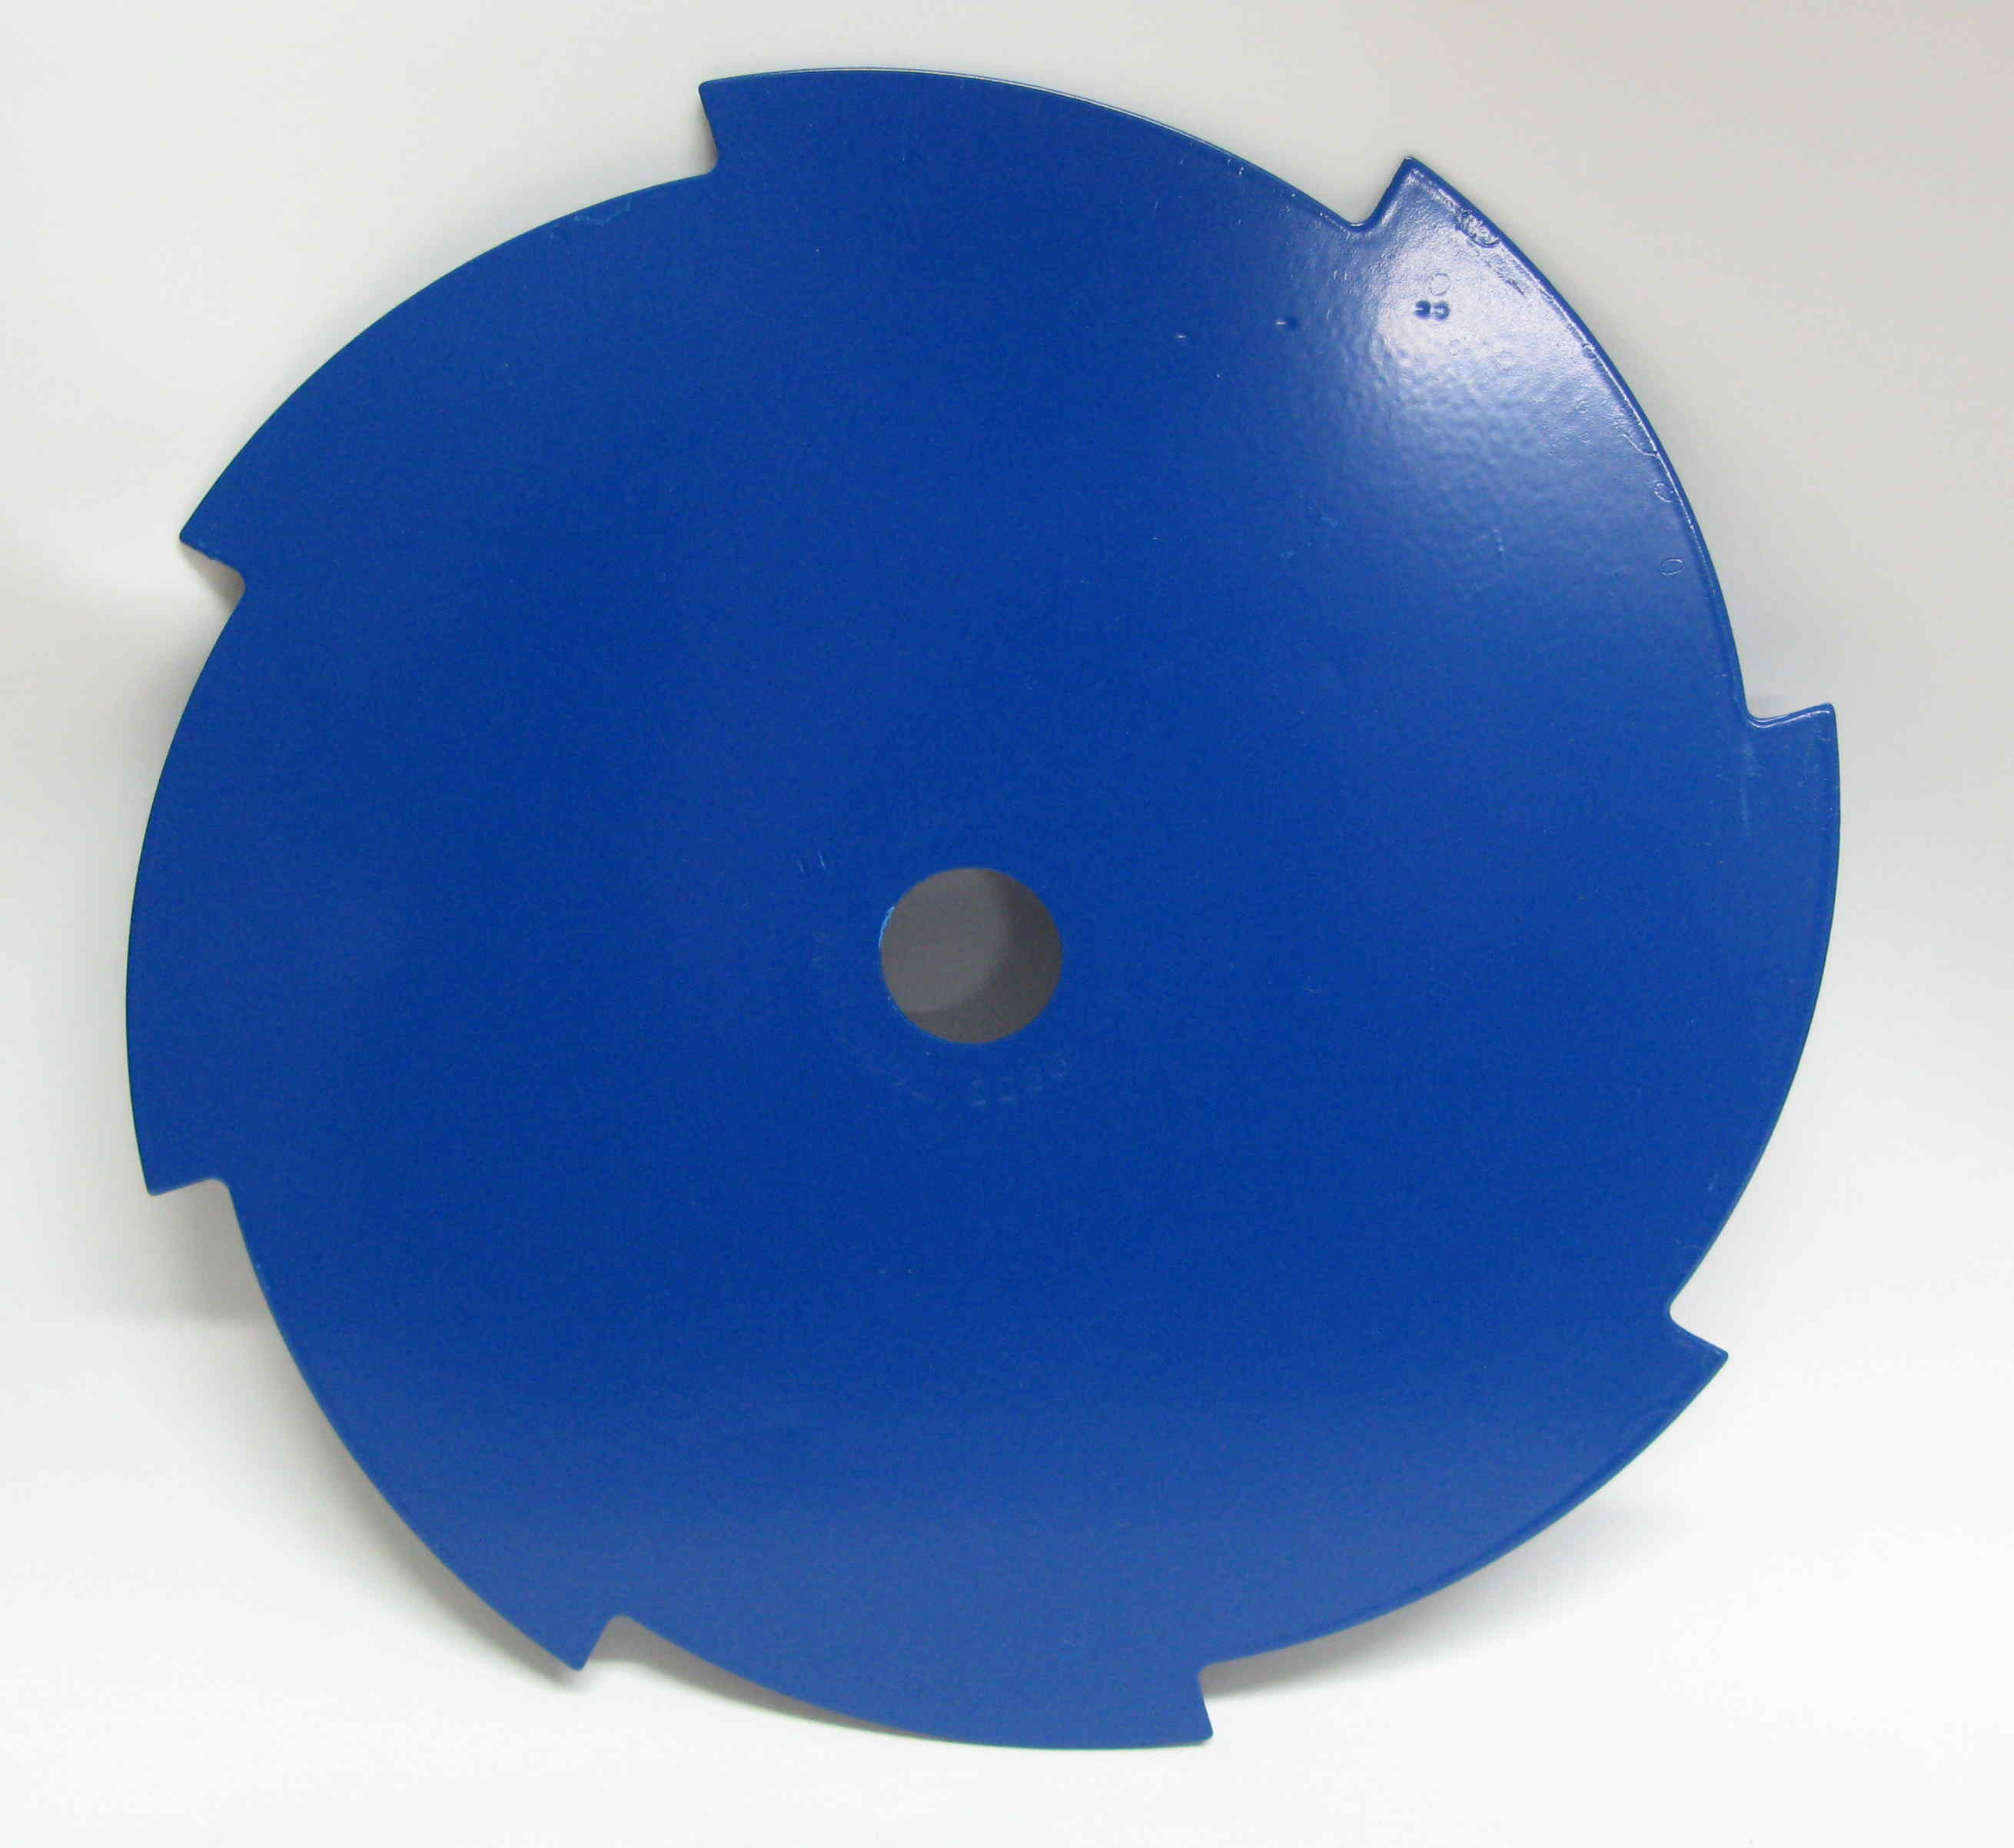 8-tooth 255mm metal brushcutter blade  (25.4mm bore). Free guard.